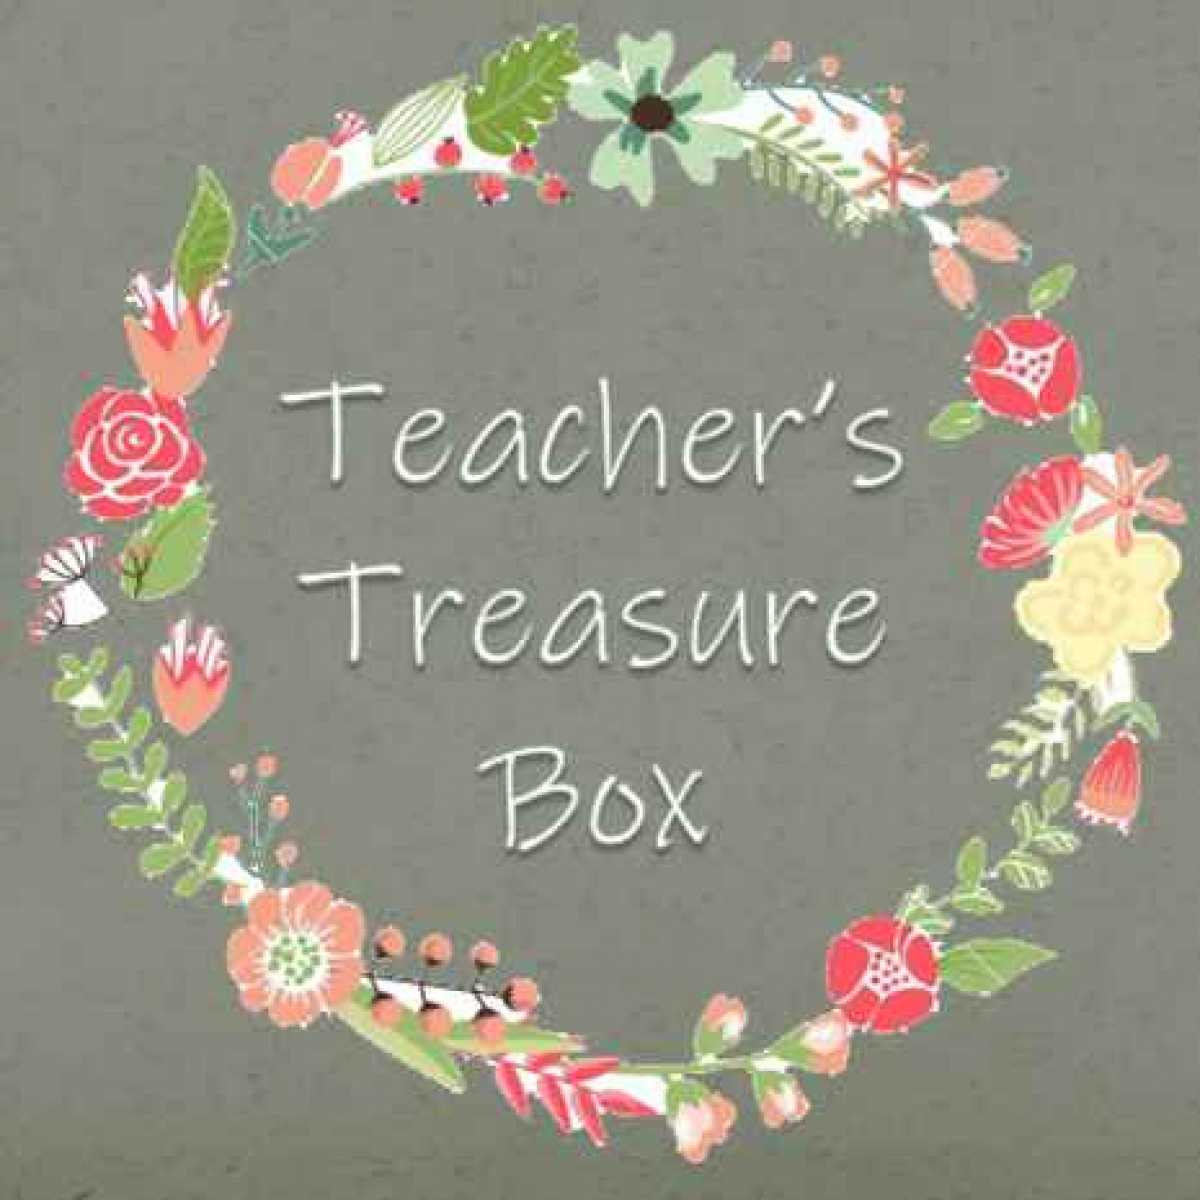 Teacher's Treasure Box